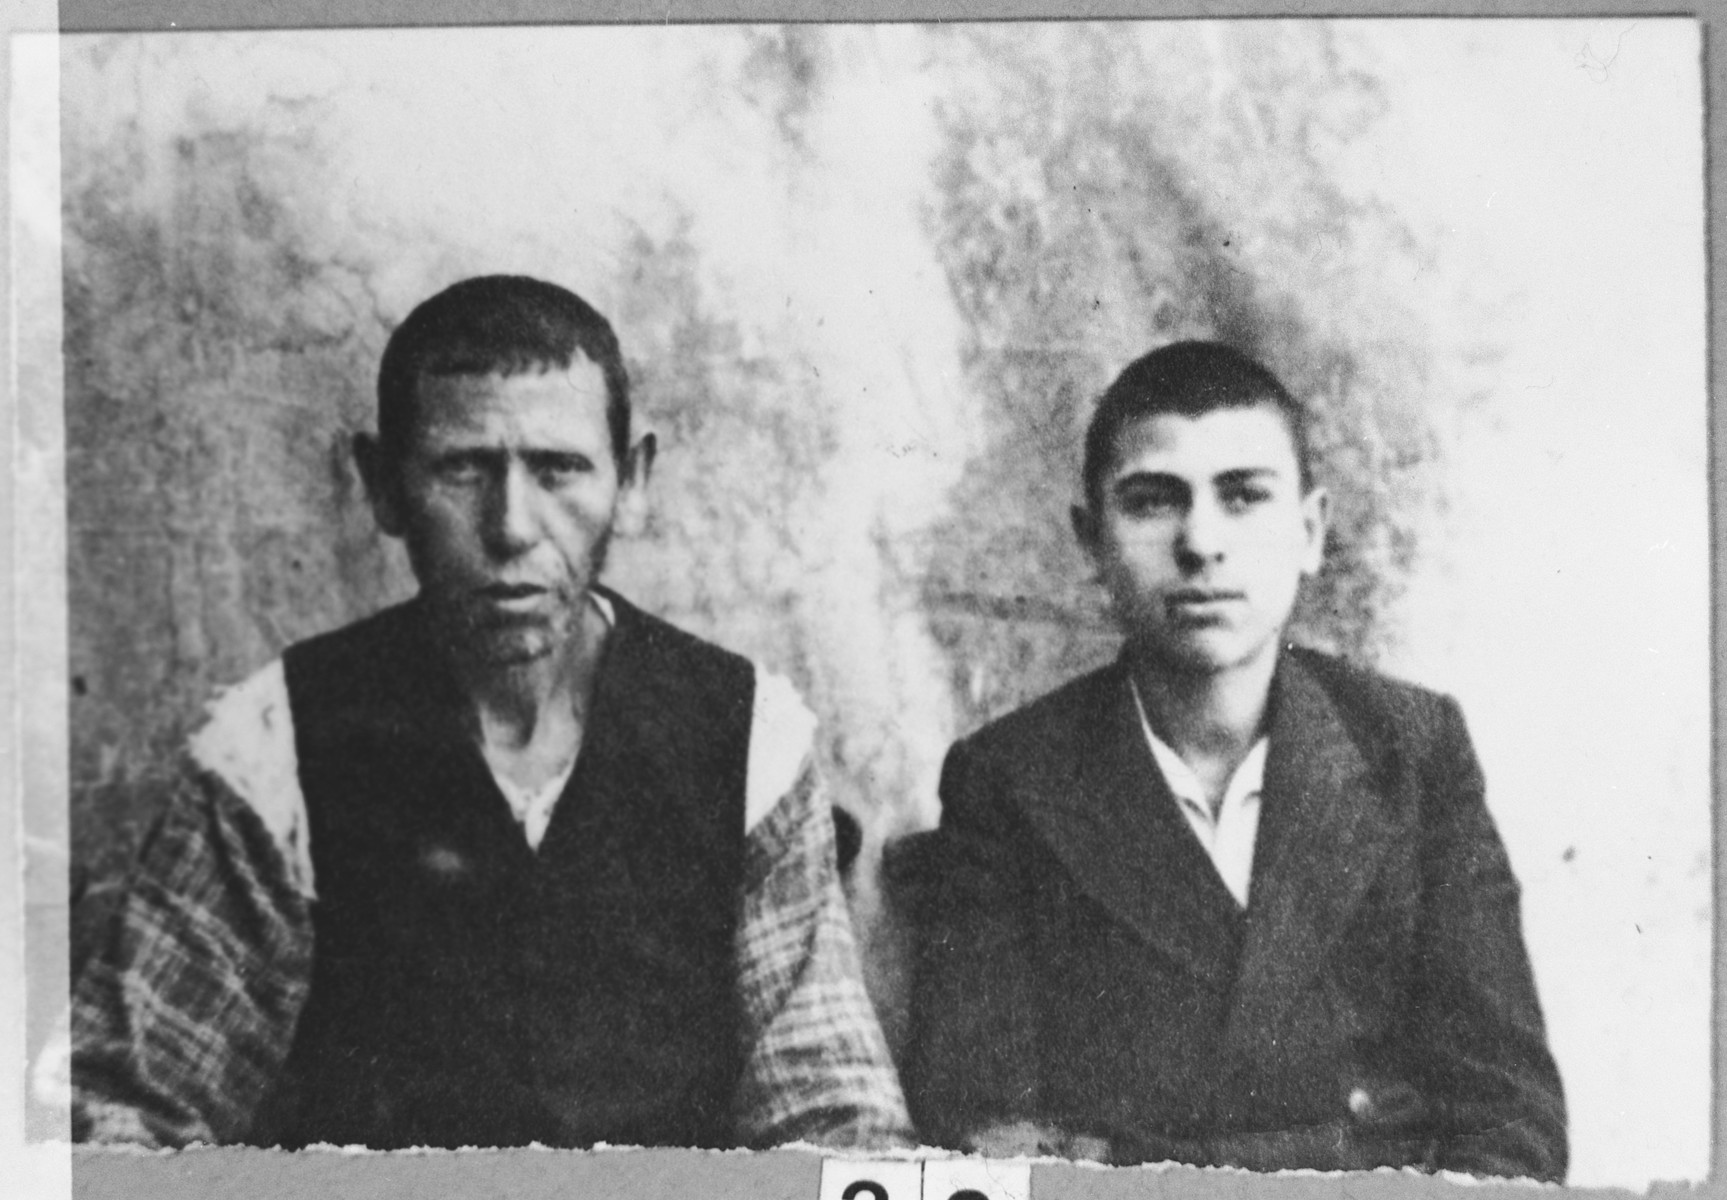 Portrait of Aron Albocher, son of Shabetai Albocher, and his son, Yakov.  Aron was a laborer and Yakov, a student.  They lived at Krstitsa 12 in Bitola.